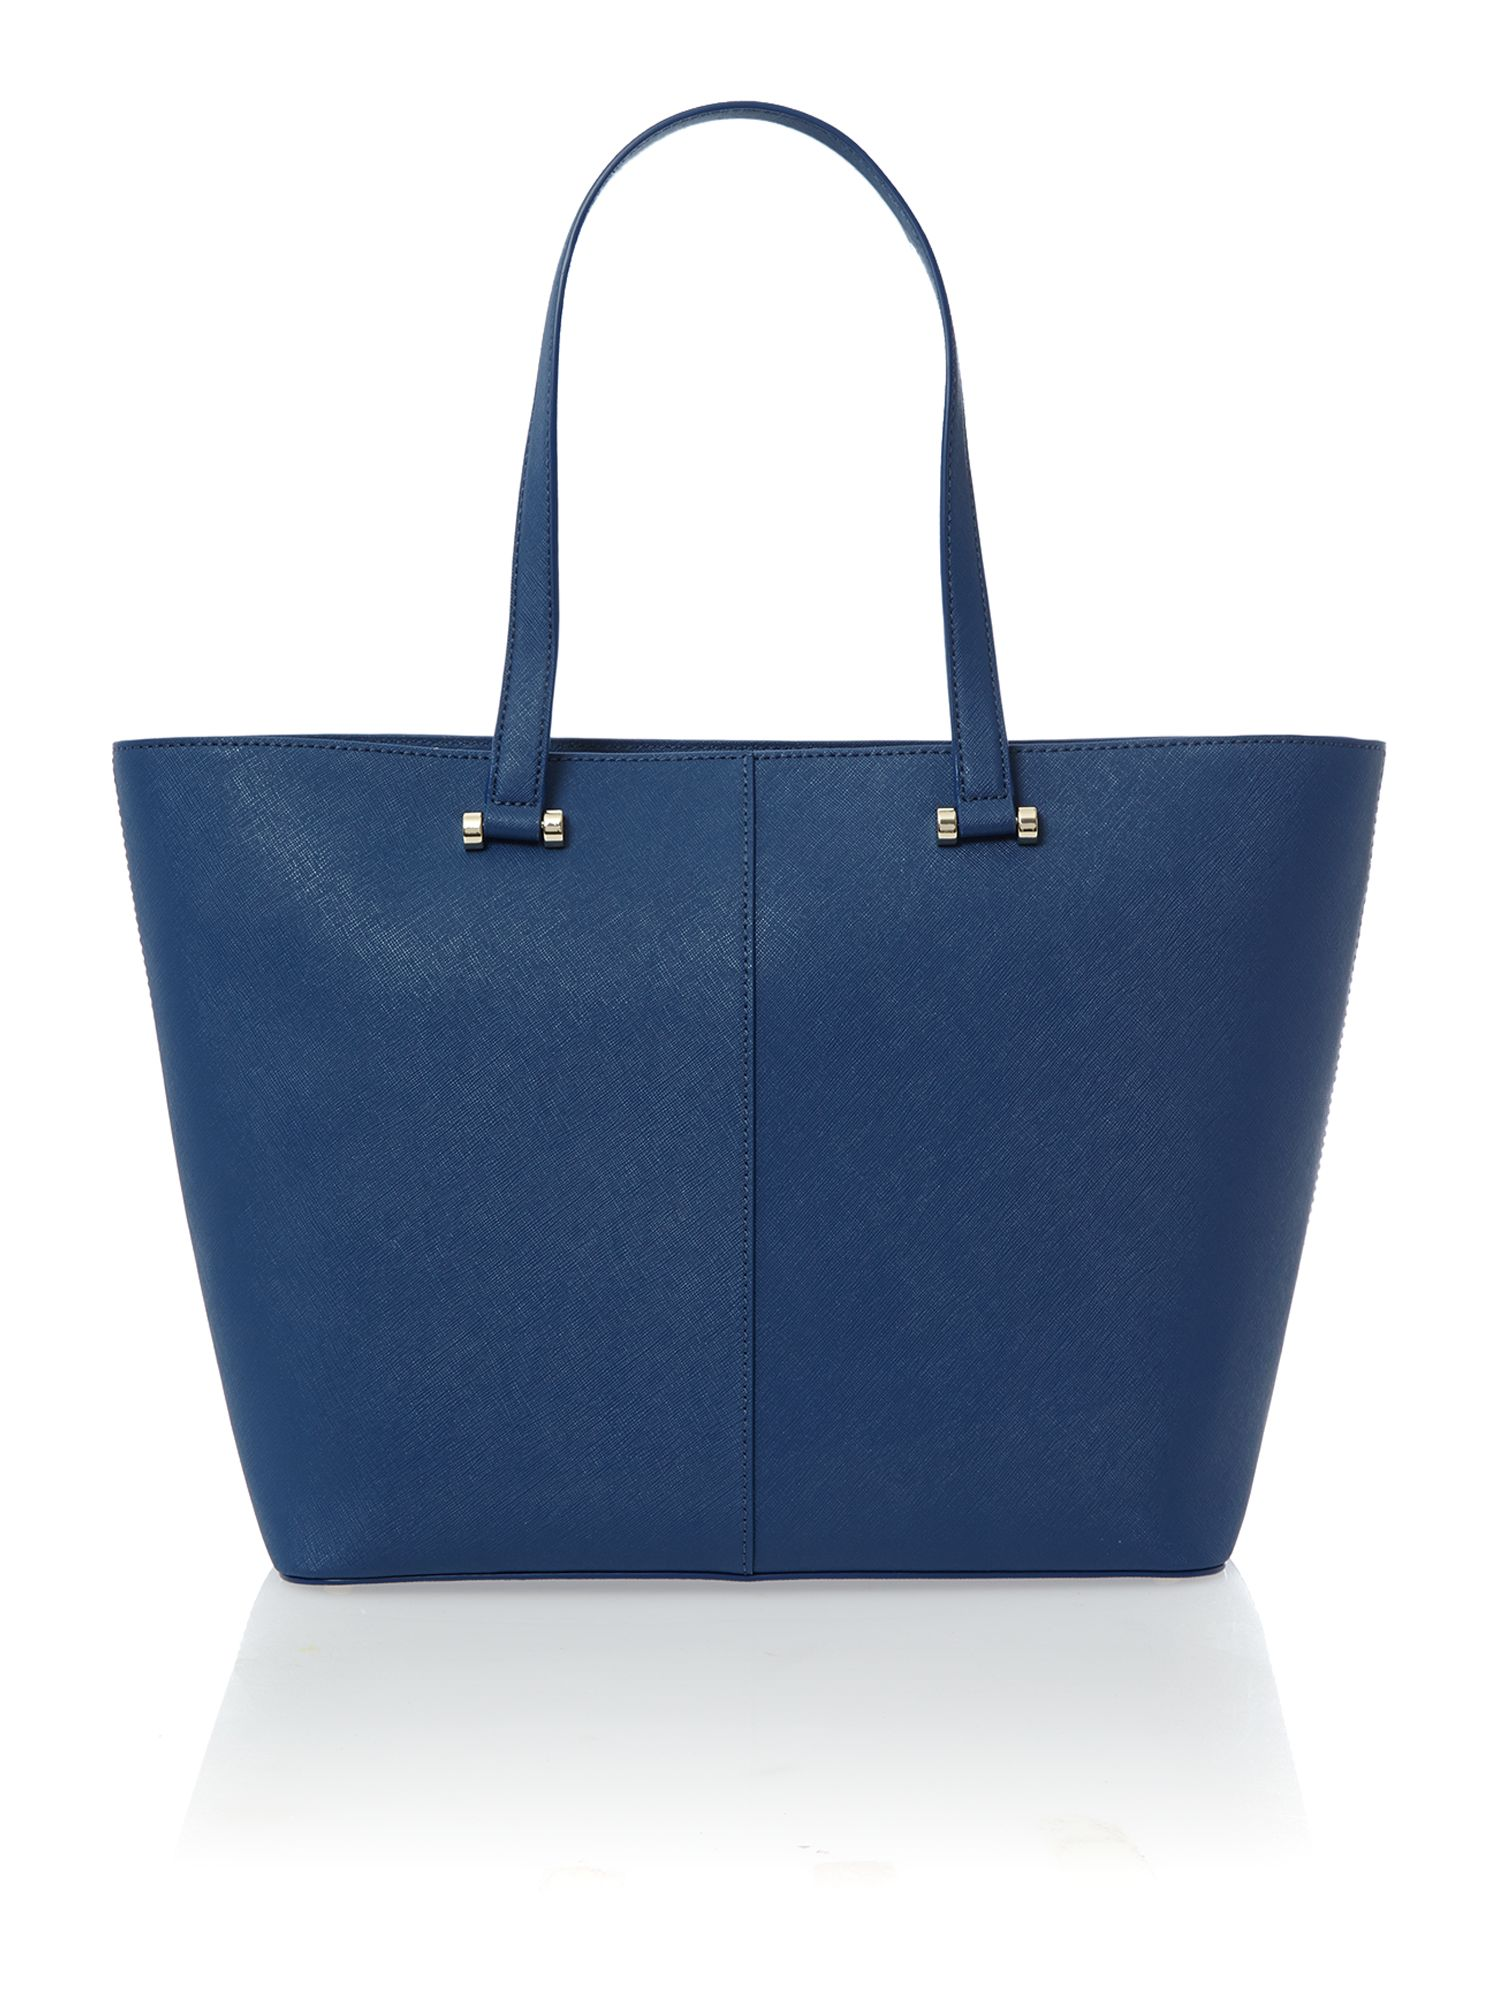 Bryant park multi coloured tote bag